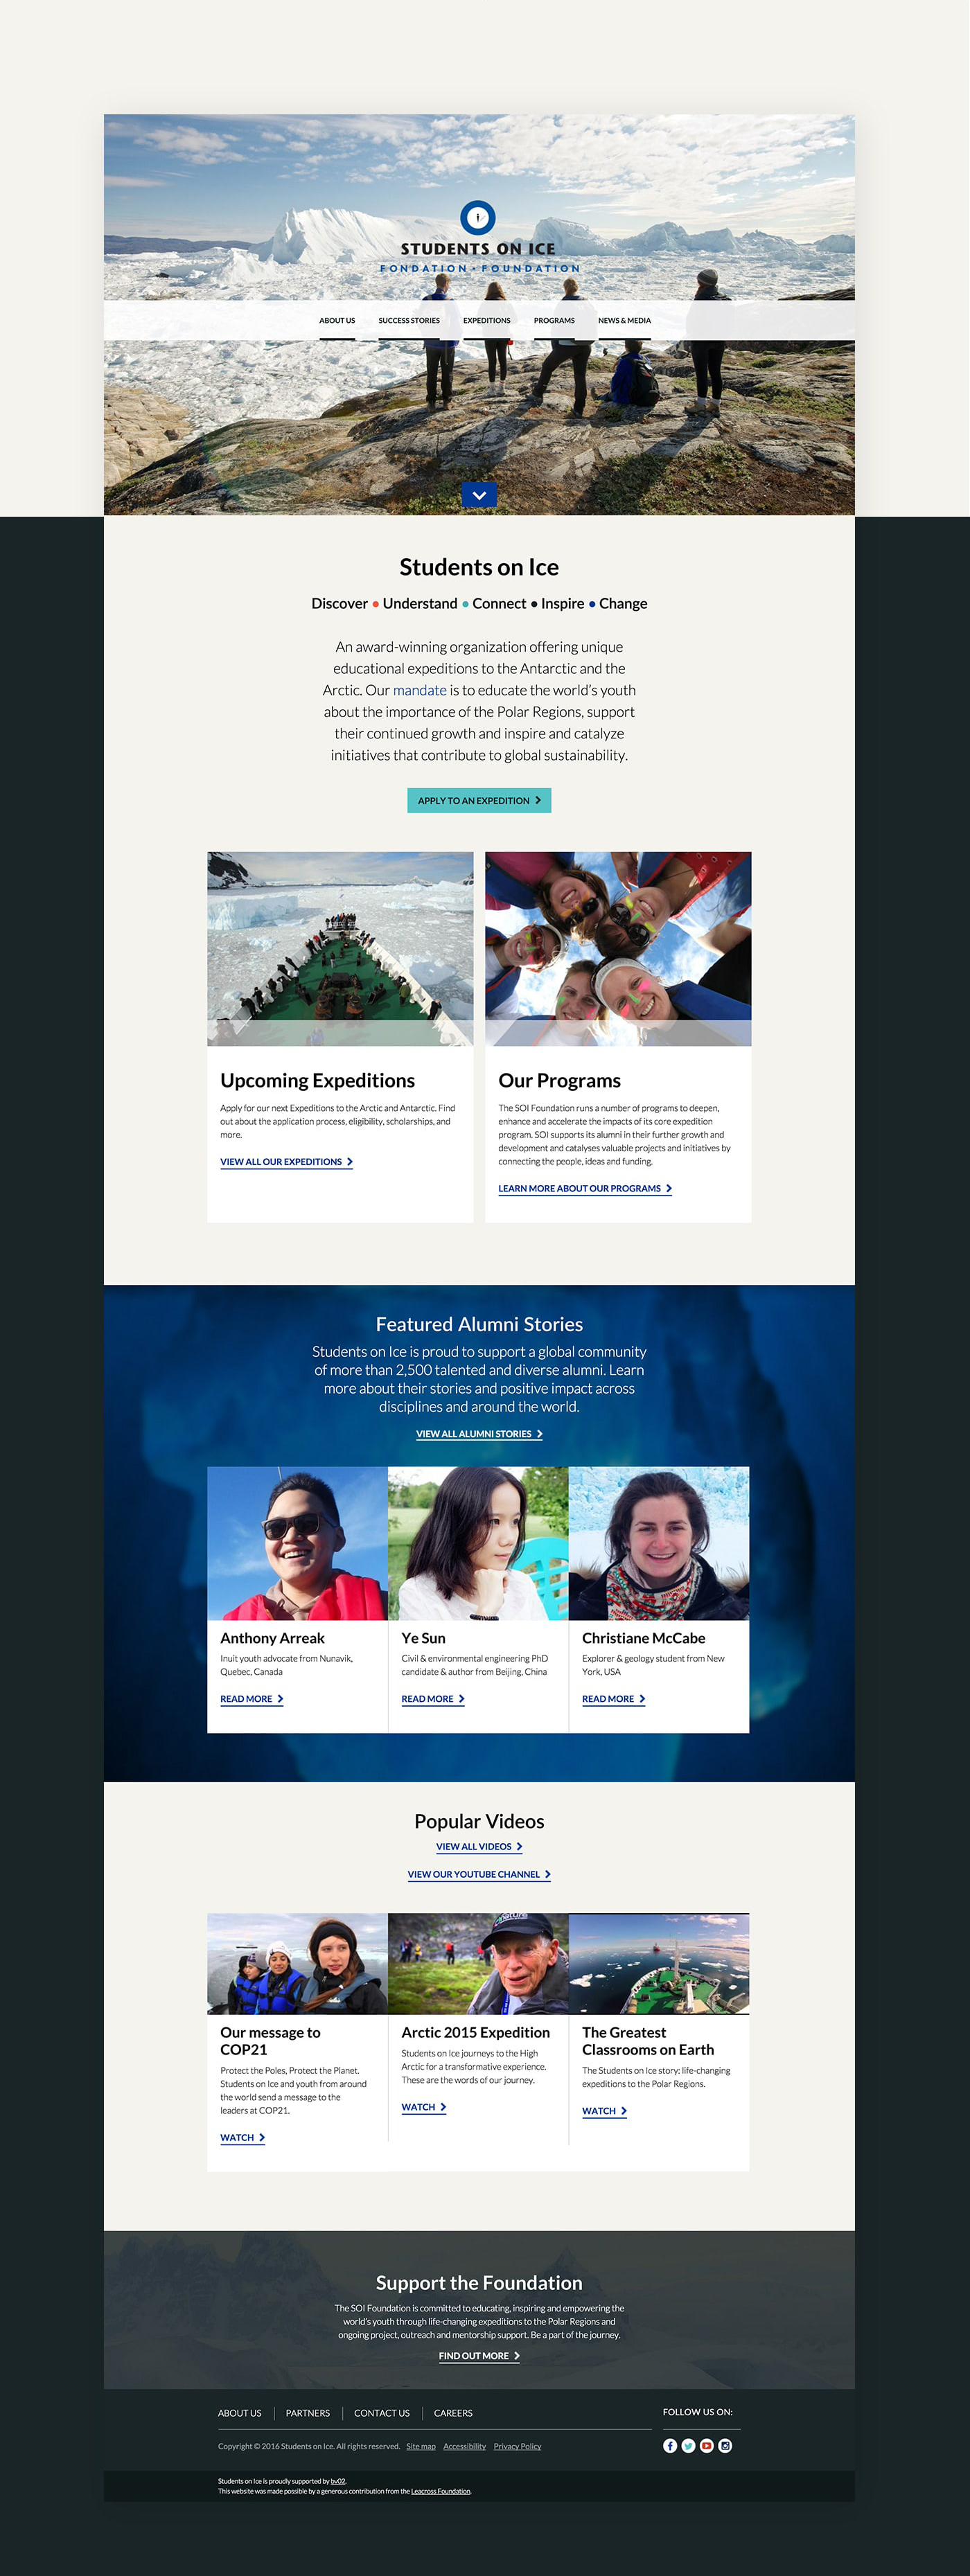 Students on Ice Foundation responsive website design